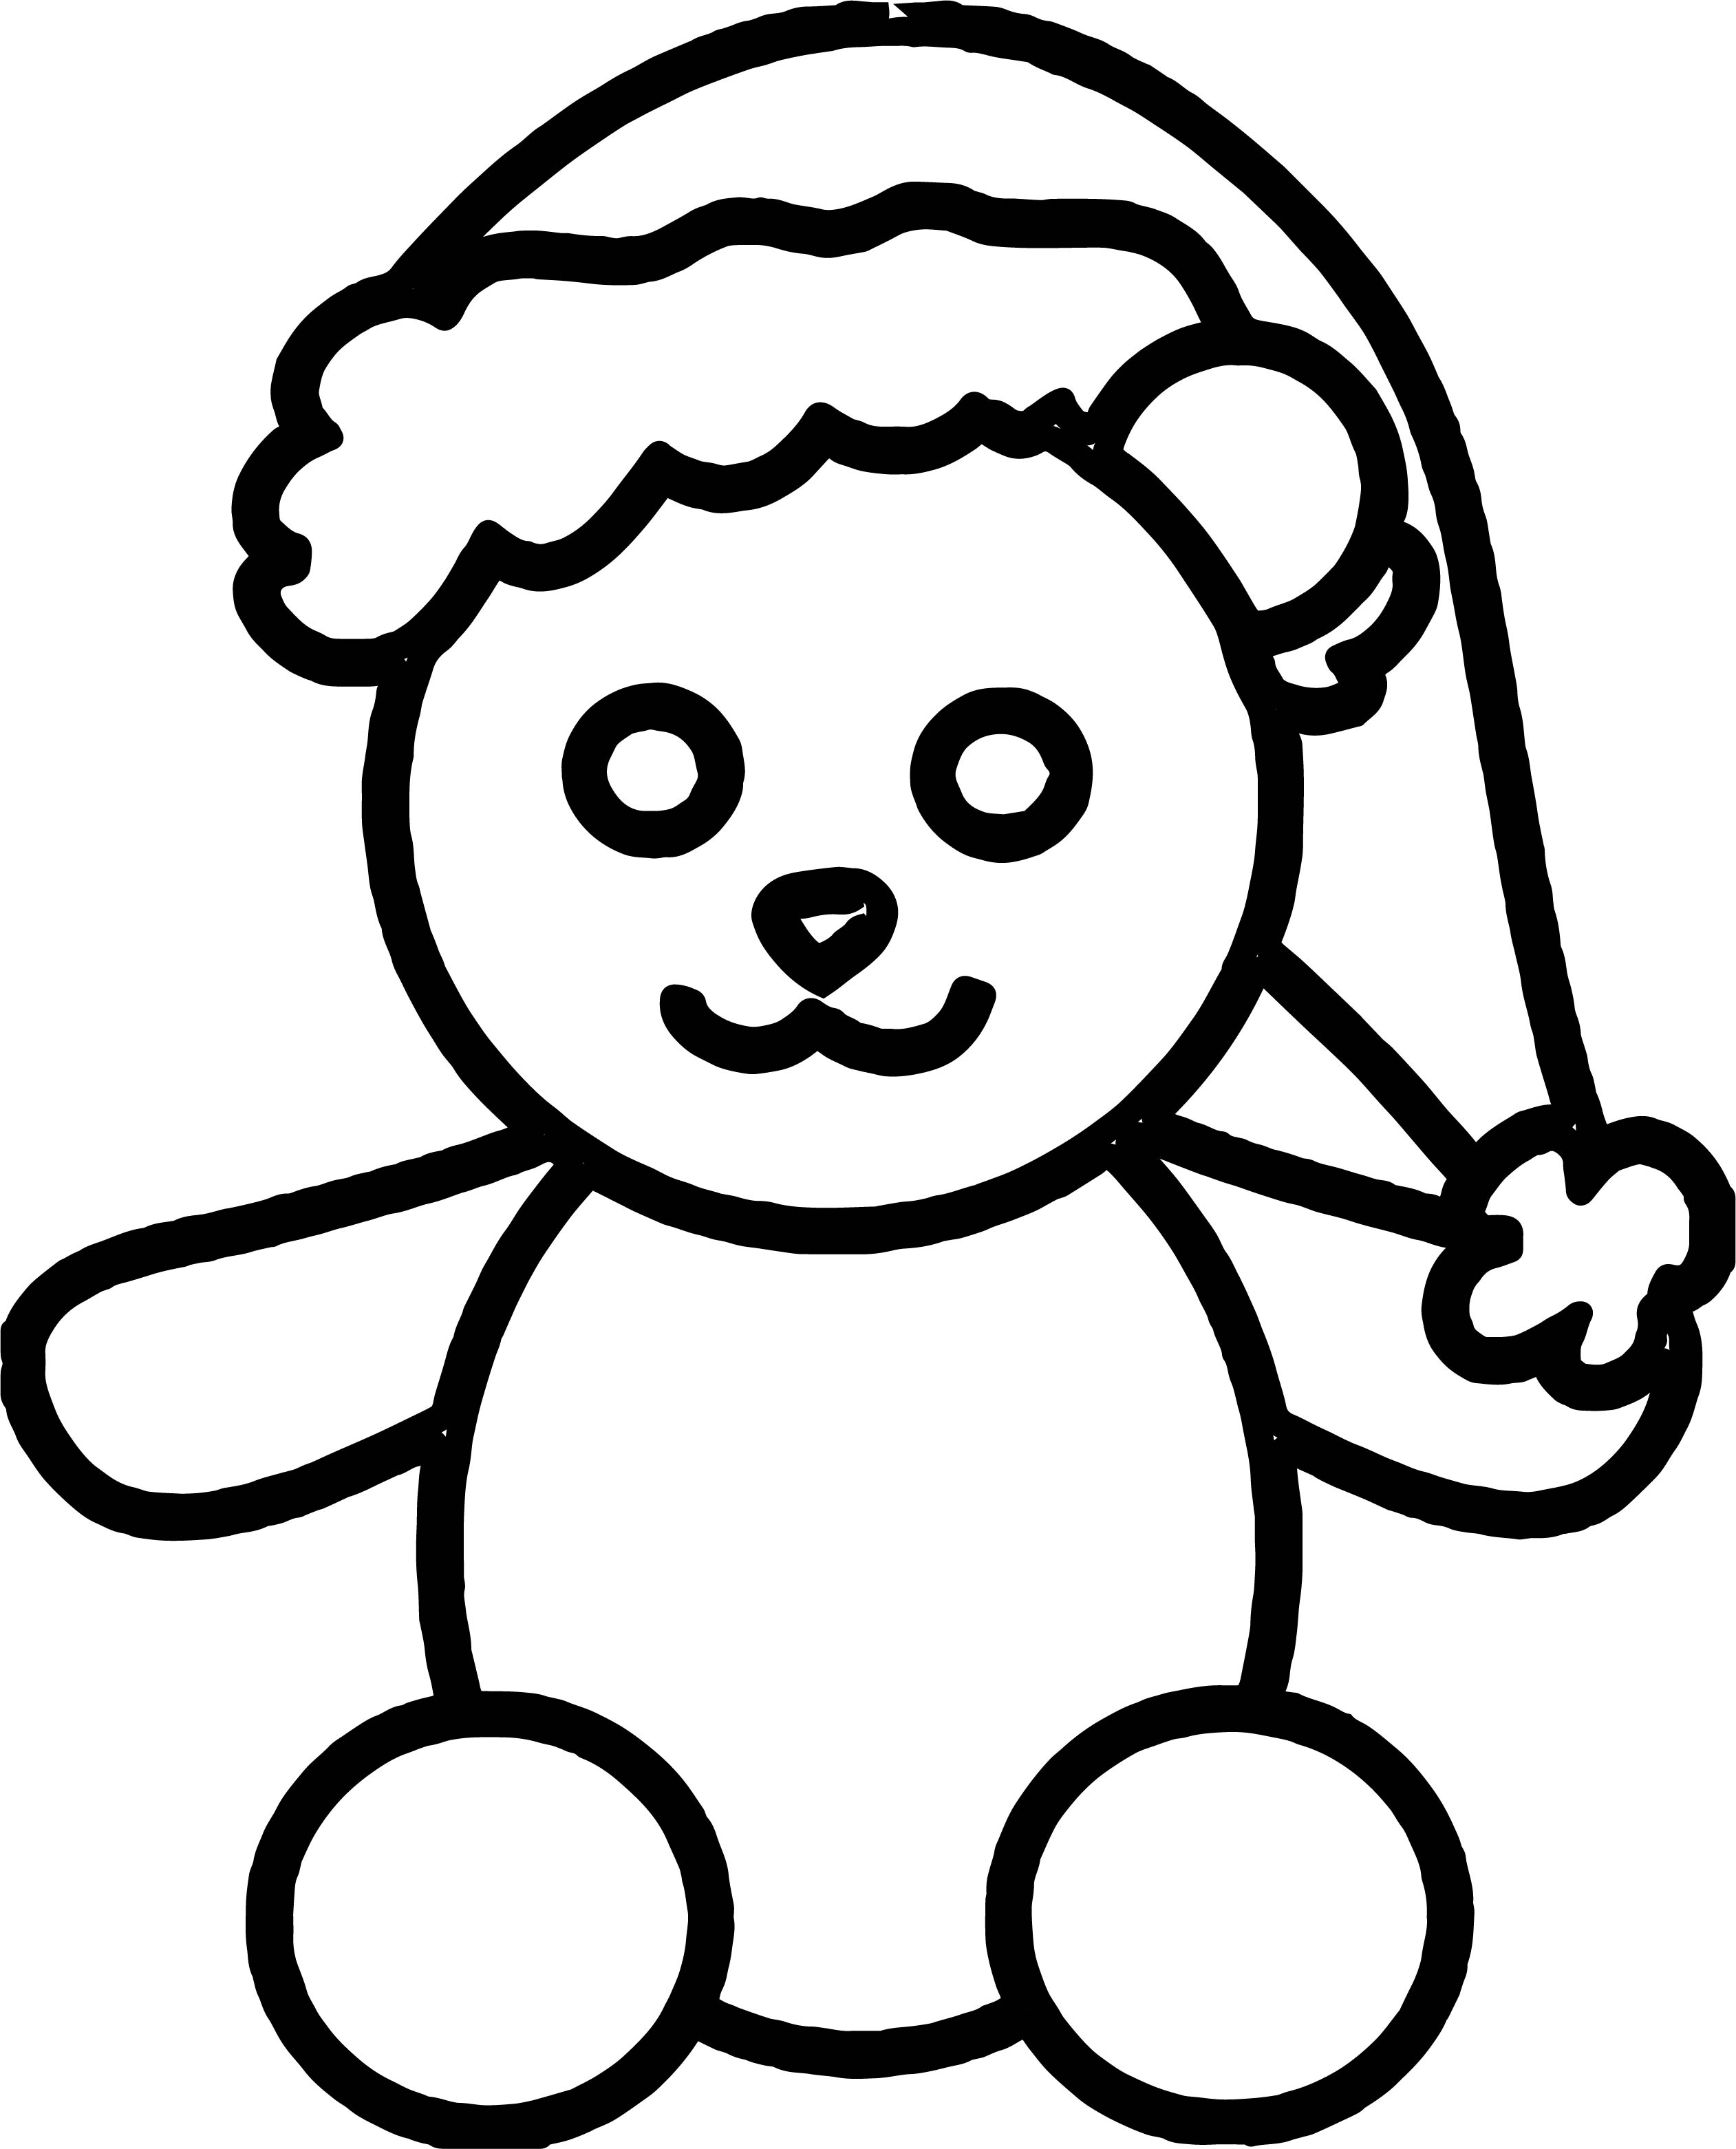 Is Bear Coloring Page